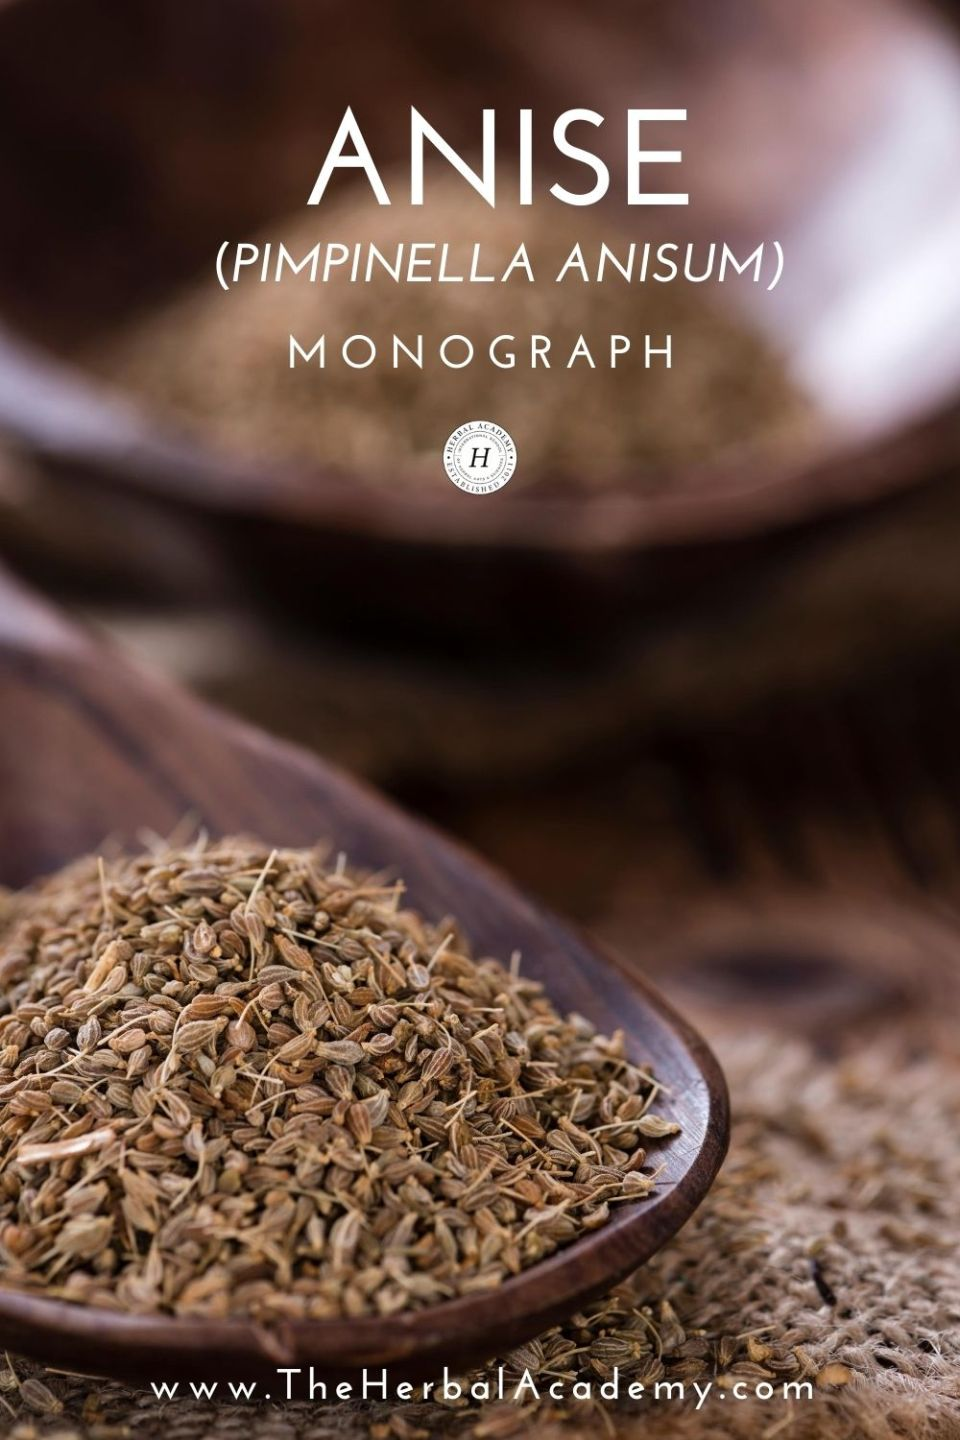 Anise Monograph: Pimpinella Anisum | Herbal Academy | In this anise monograph, you'll learn the history of this fascinating plant along with botanical descriptions and modern uses.